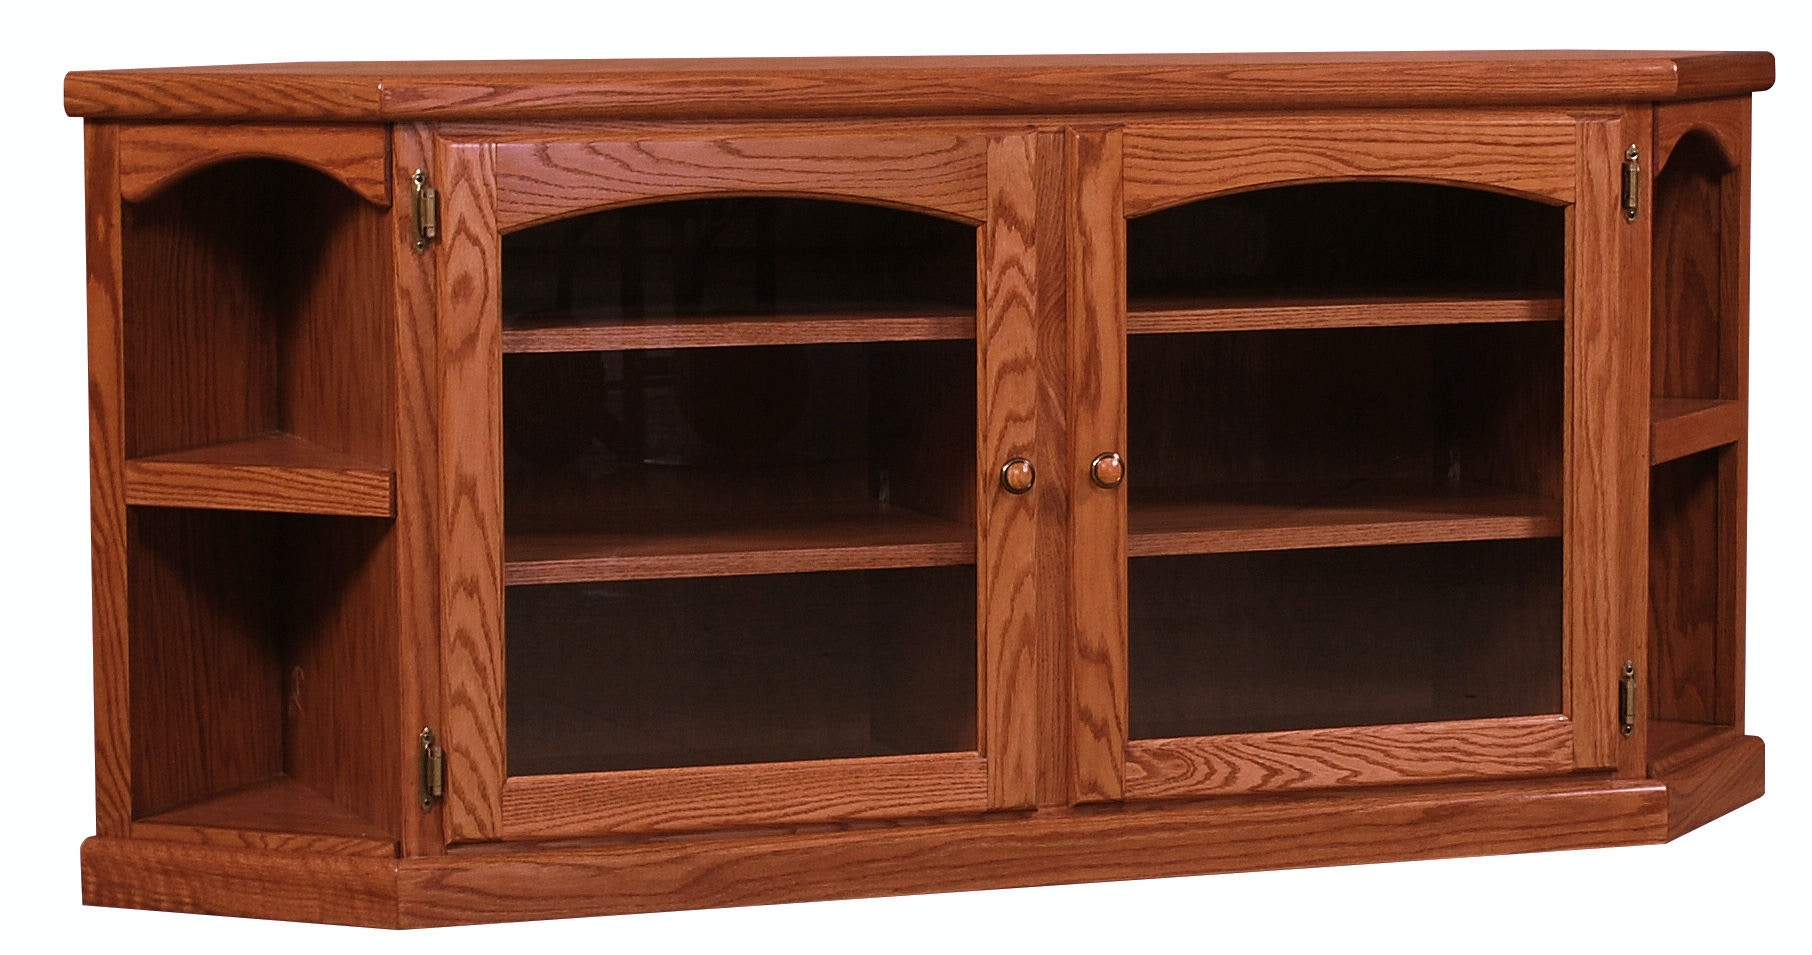 Willow Valley Corner Tv Stand 60 Inch WV3562